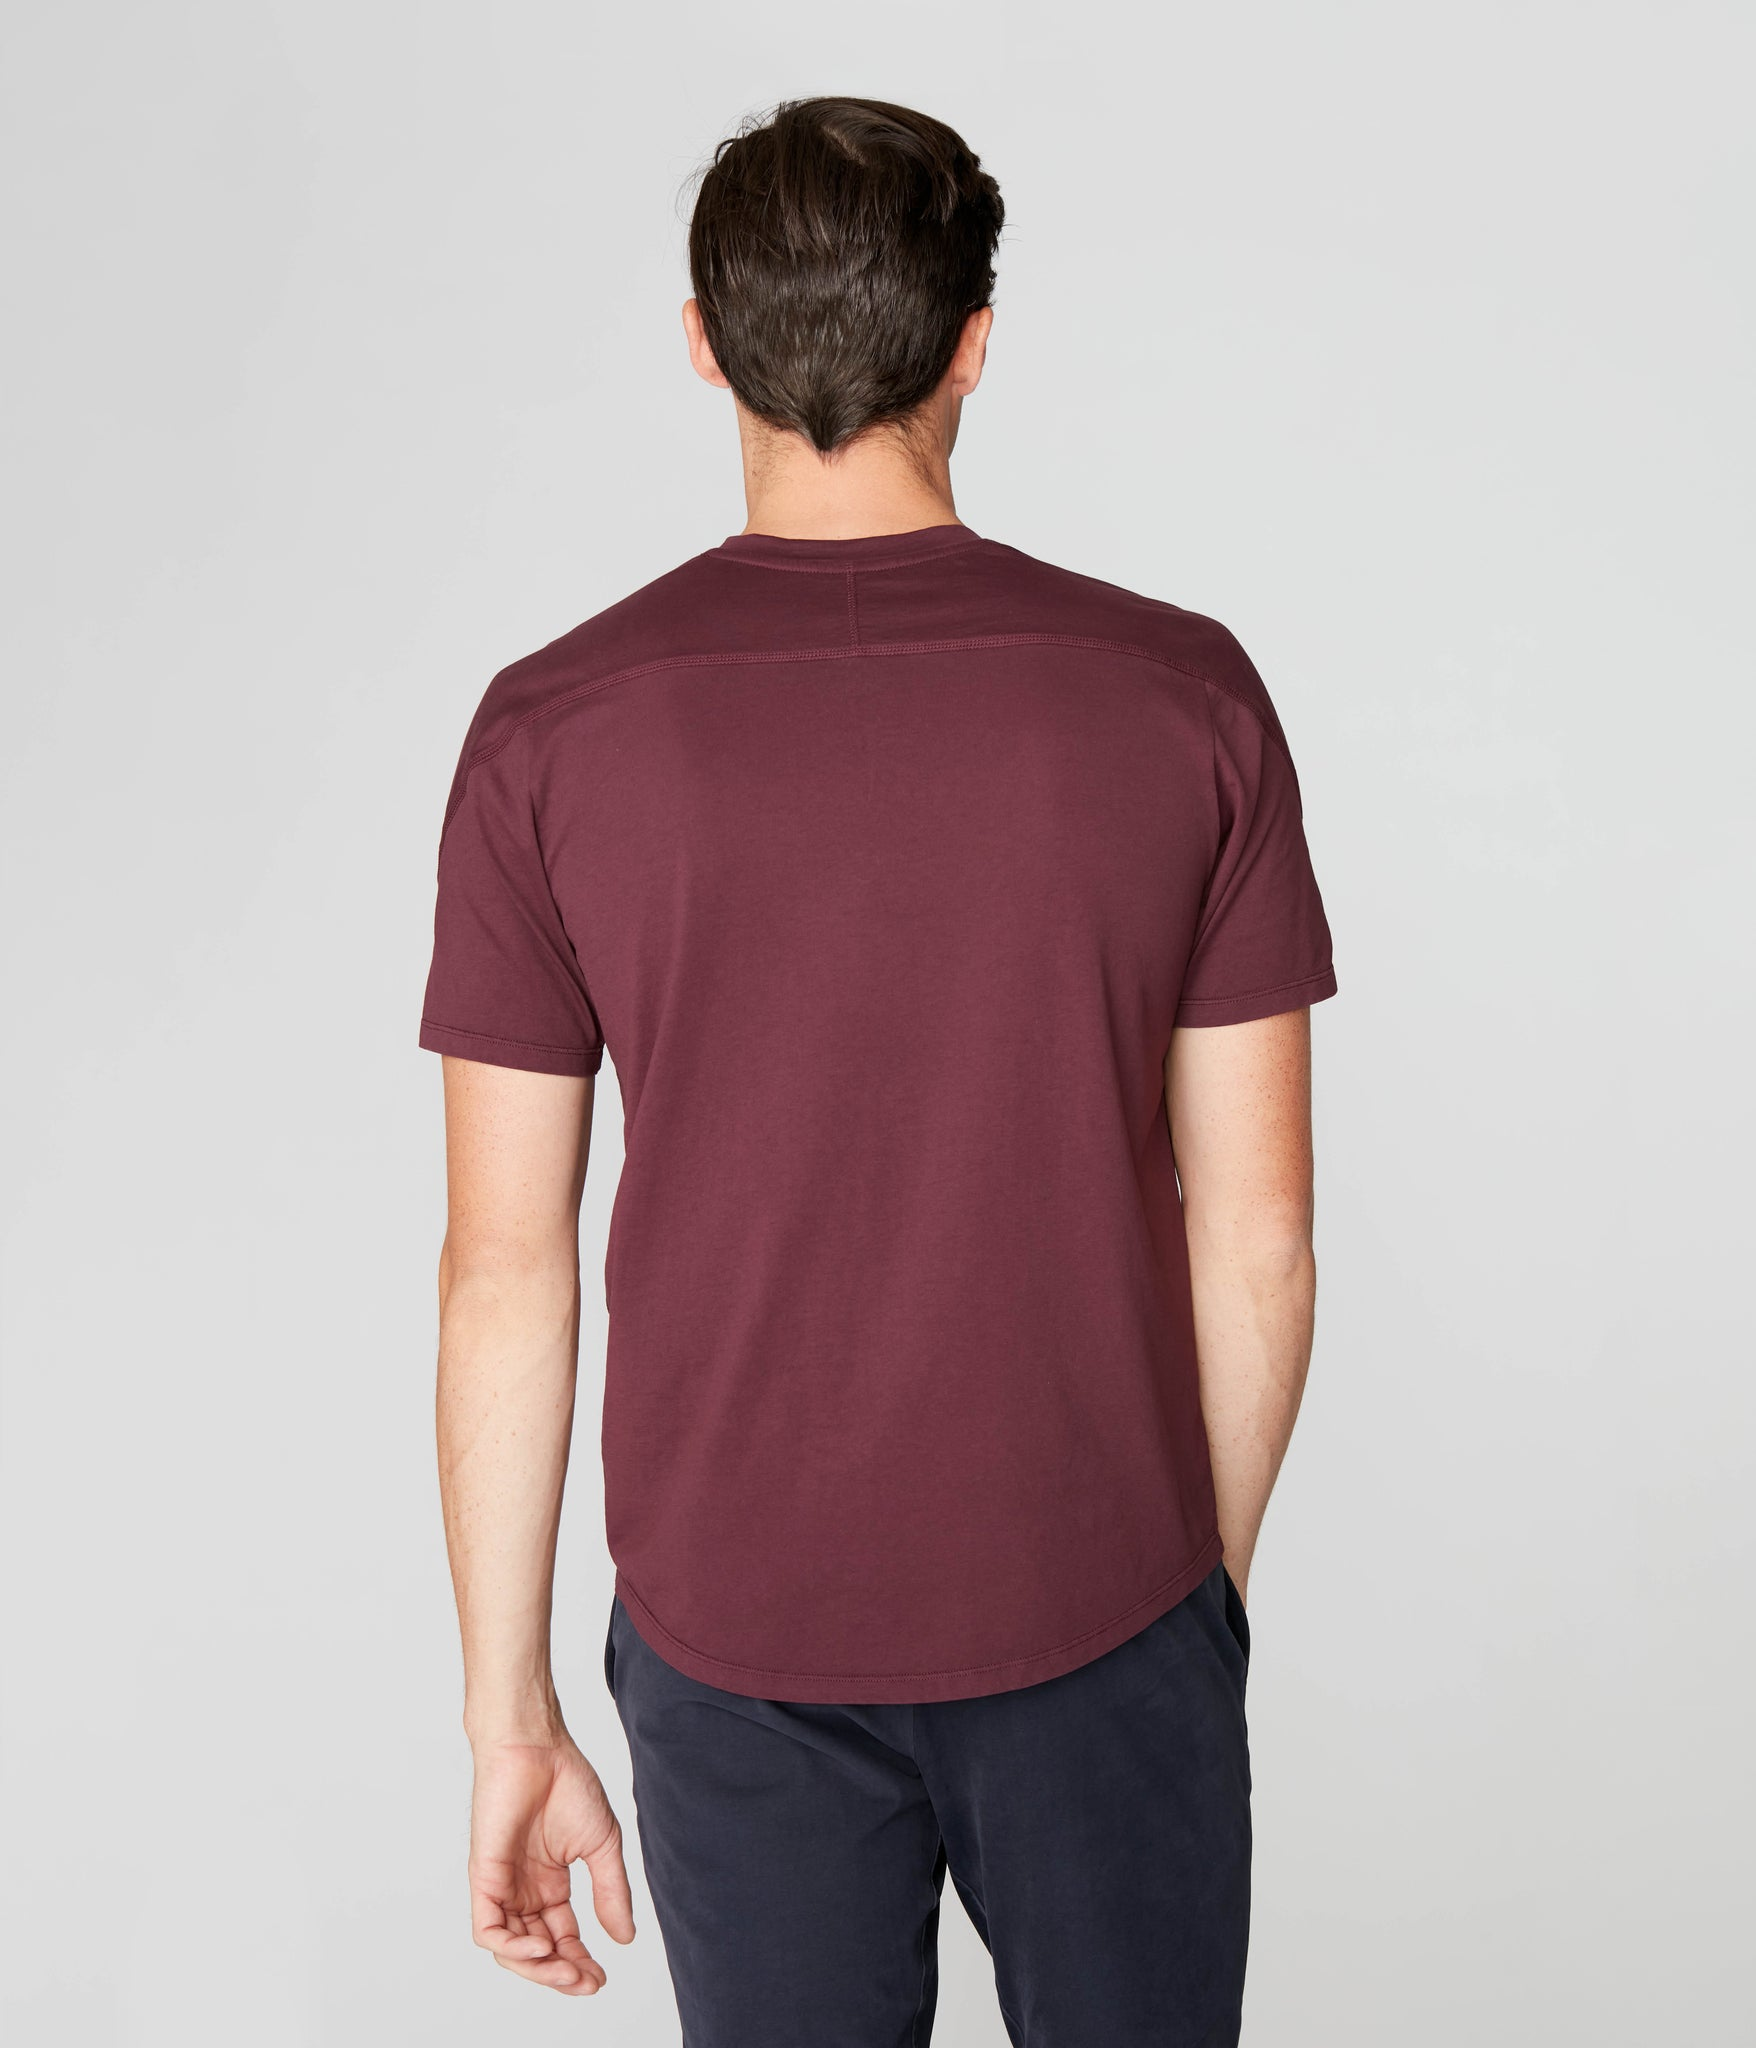 Premium Cotton Jersey Notch Neck Crew - Wine